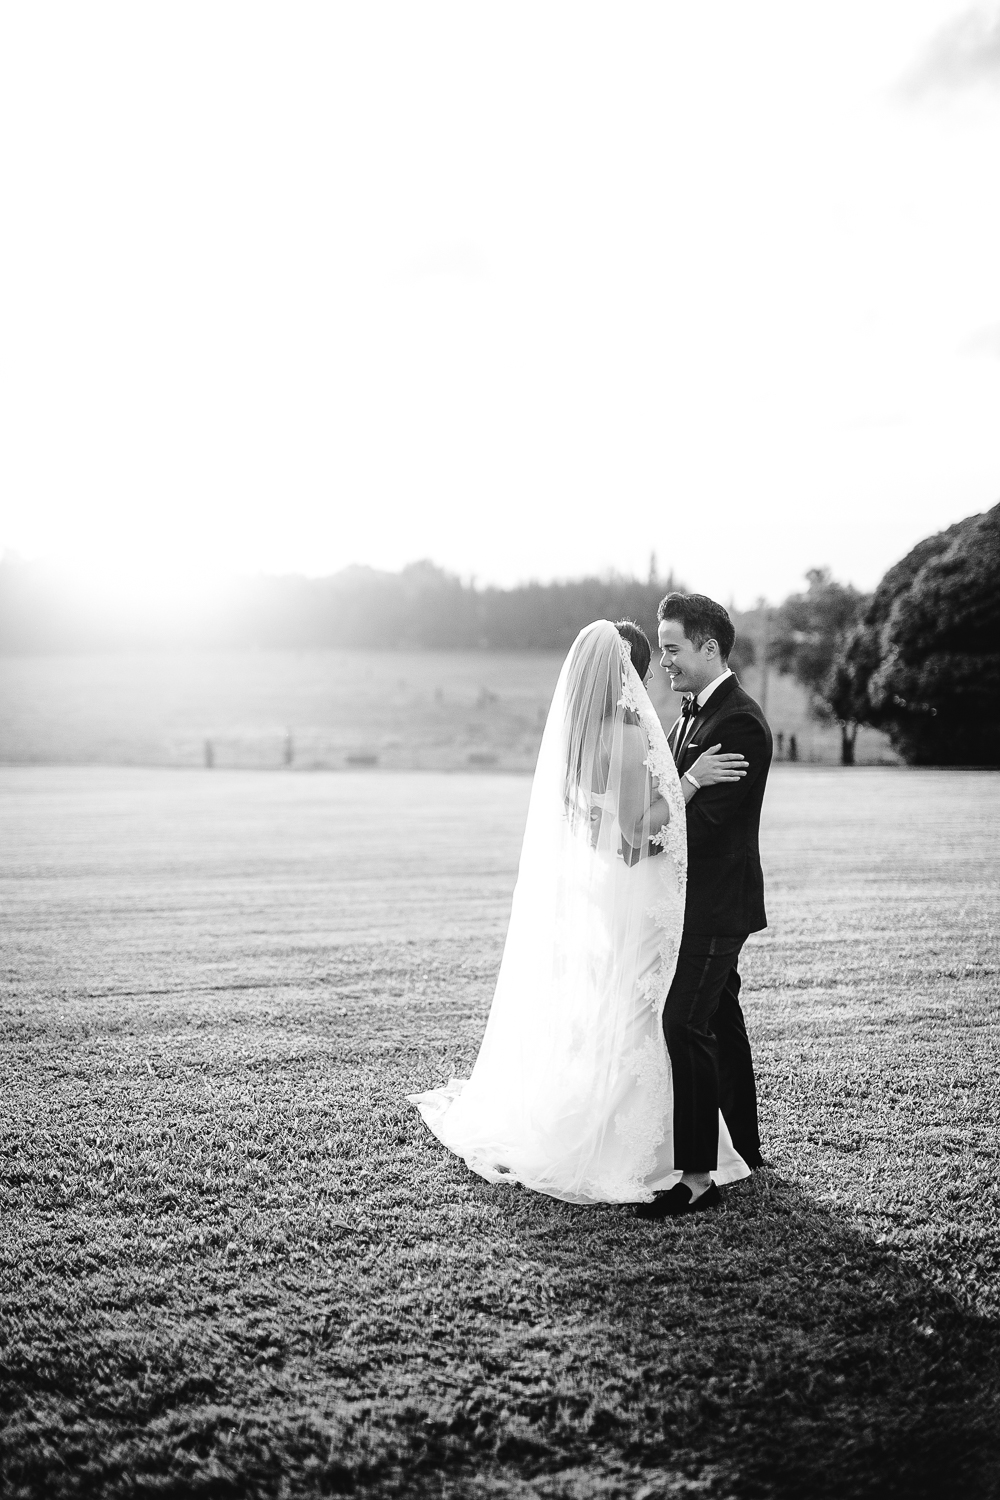 Adam+Crystal-4346-Edit.jpg